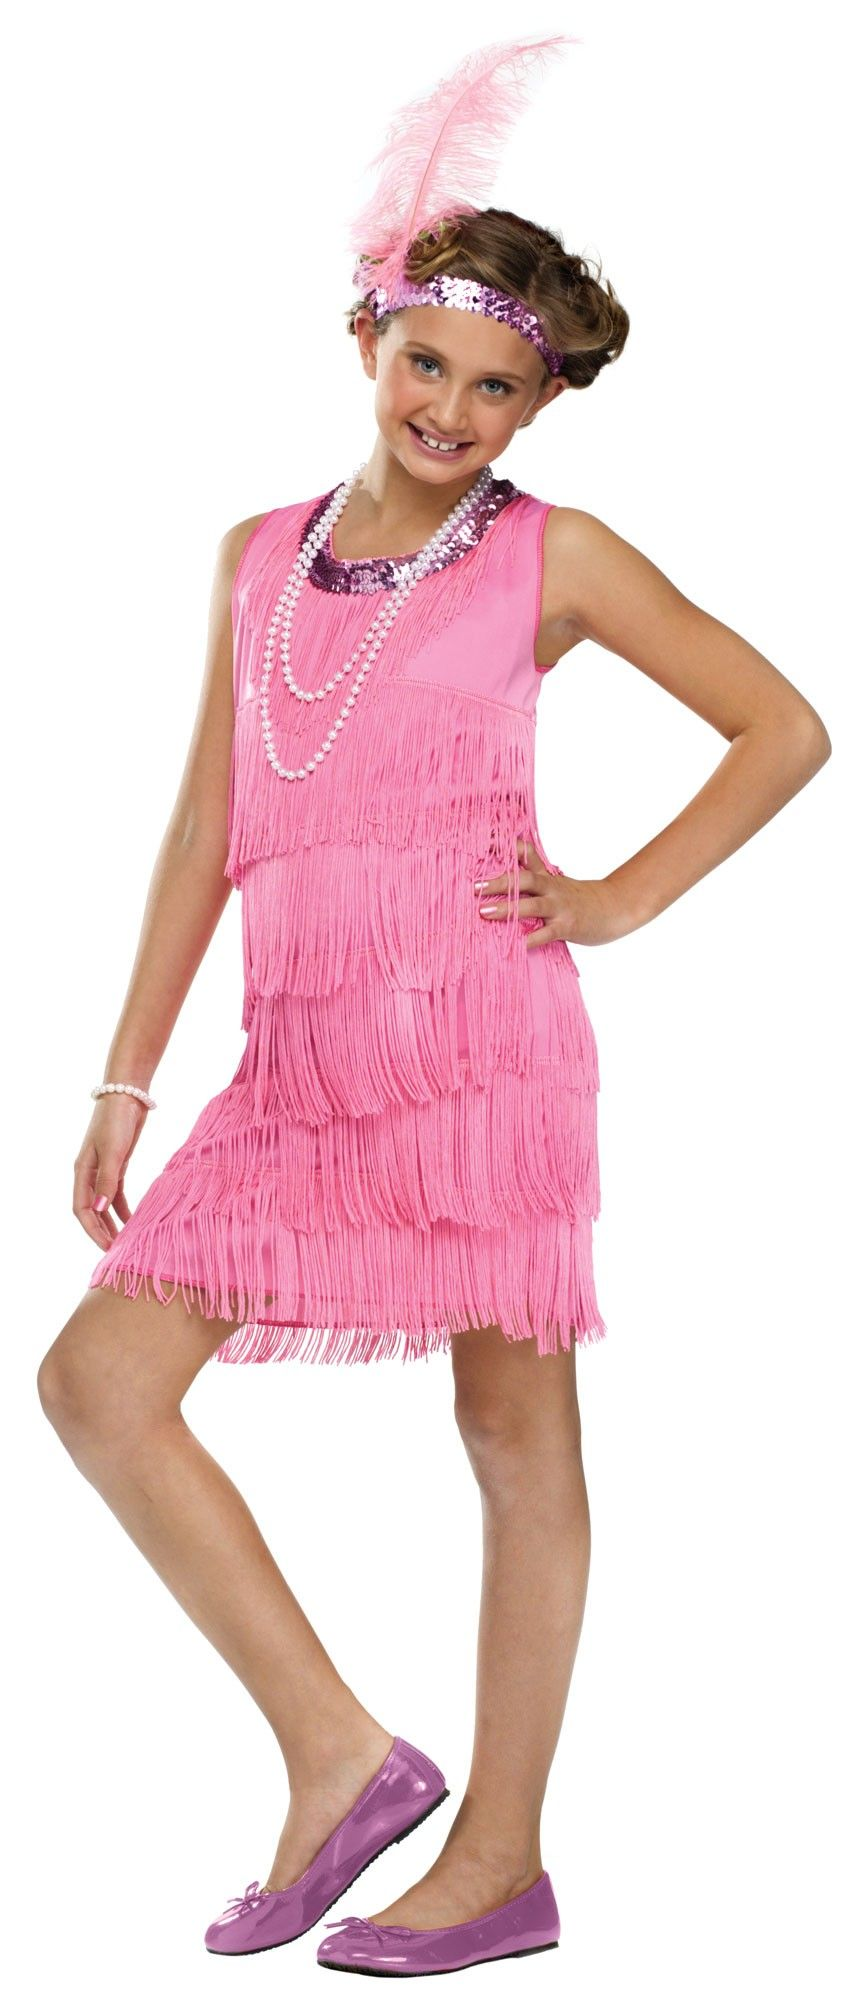 d1fa30e7258 1920s Pink Flapper Kids Costume - Show the stage your Charleston in this  sweet little flapper dress costume this Halloween. The dress is made from a  soft ...